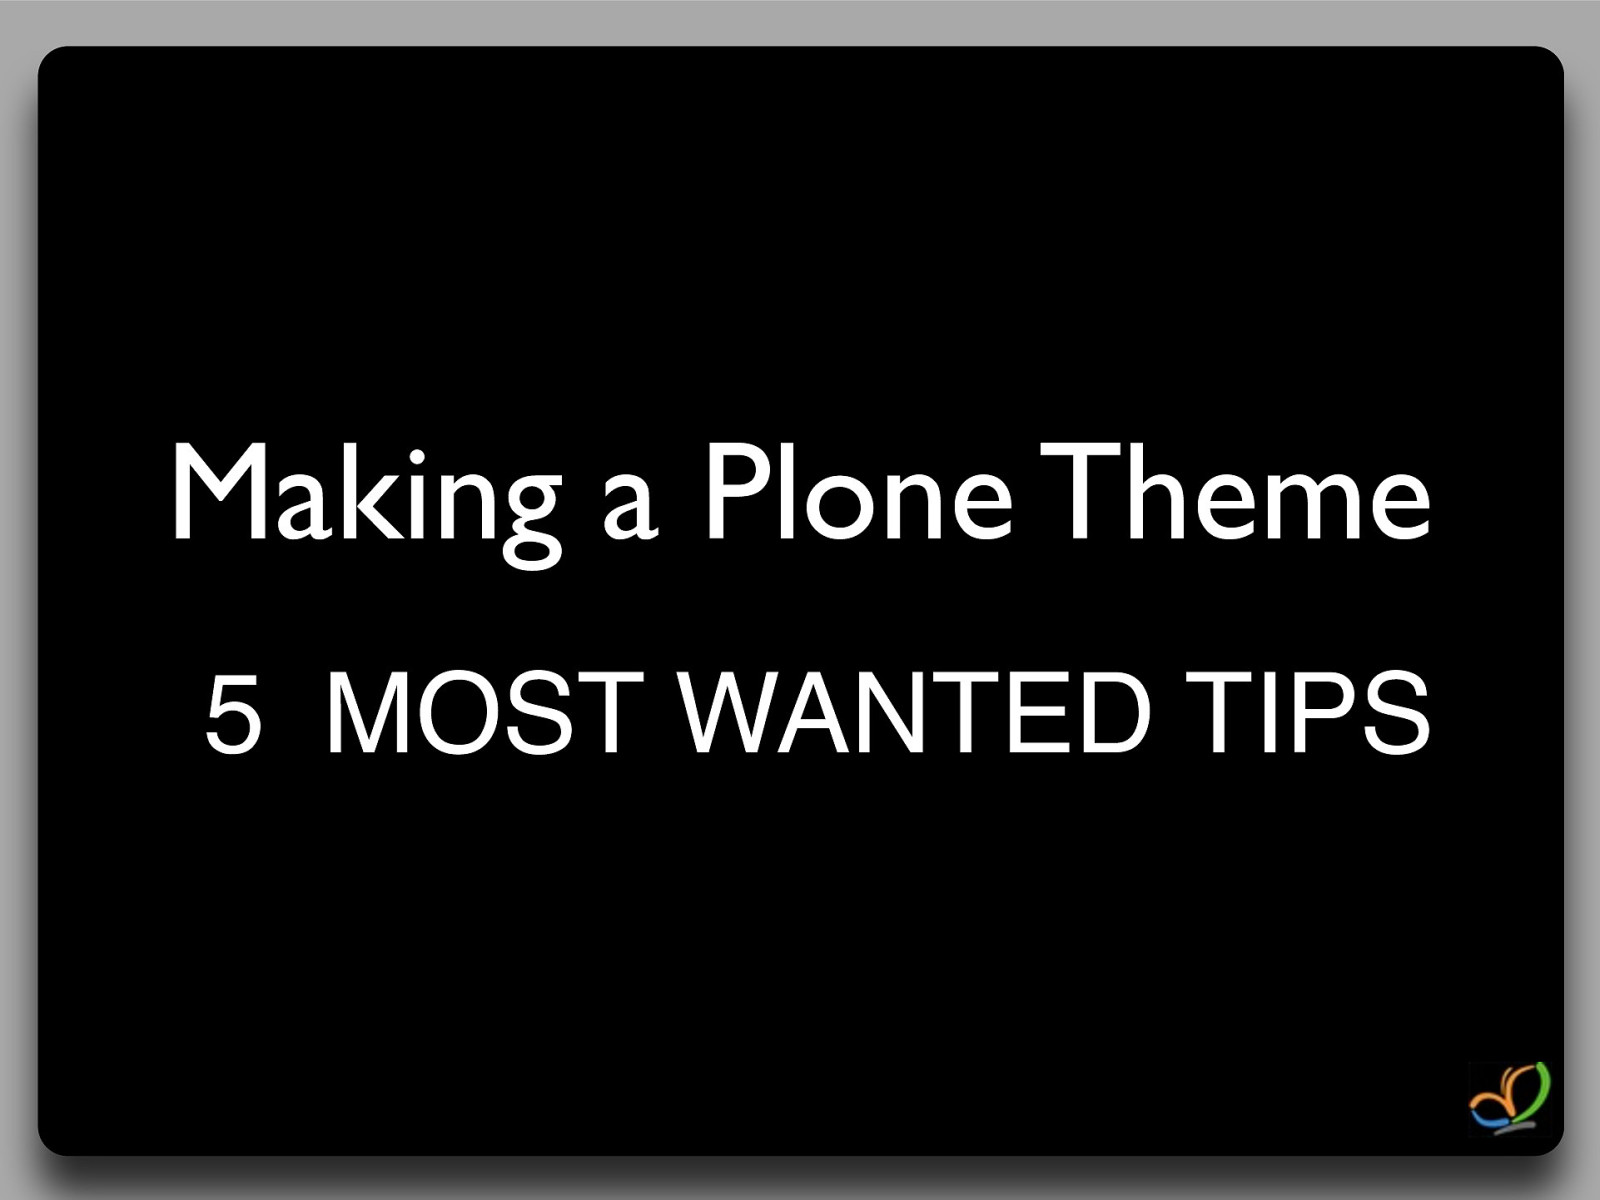 Making a Plone Theme. 5 Most Wanted Tips